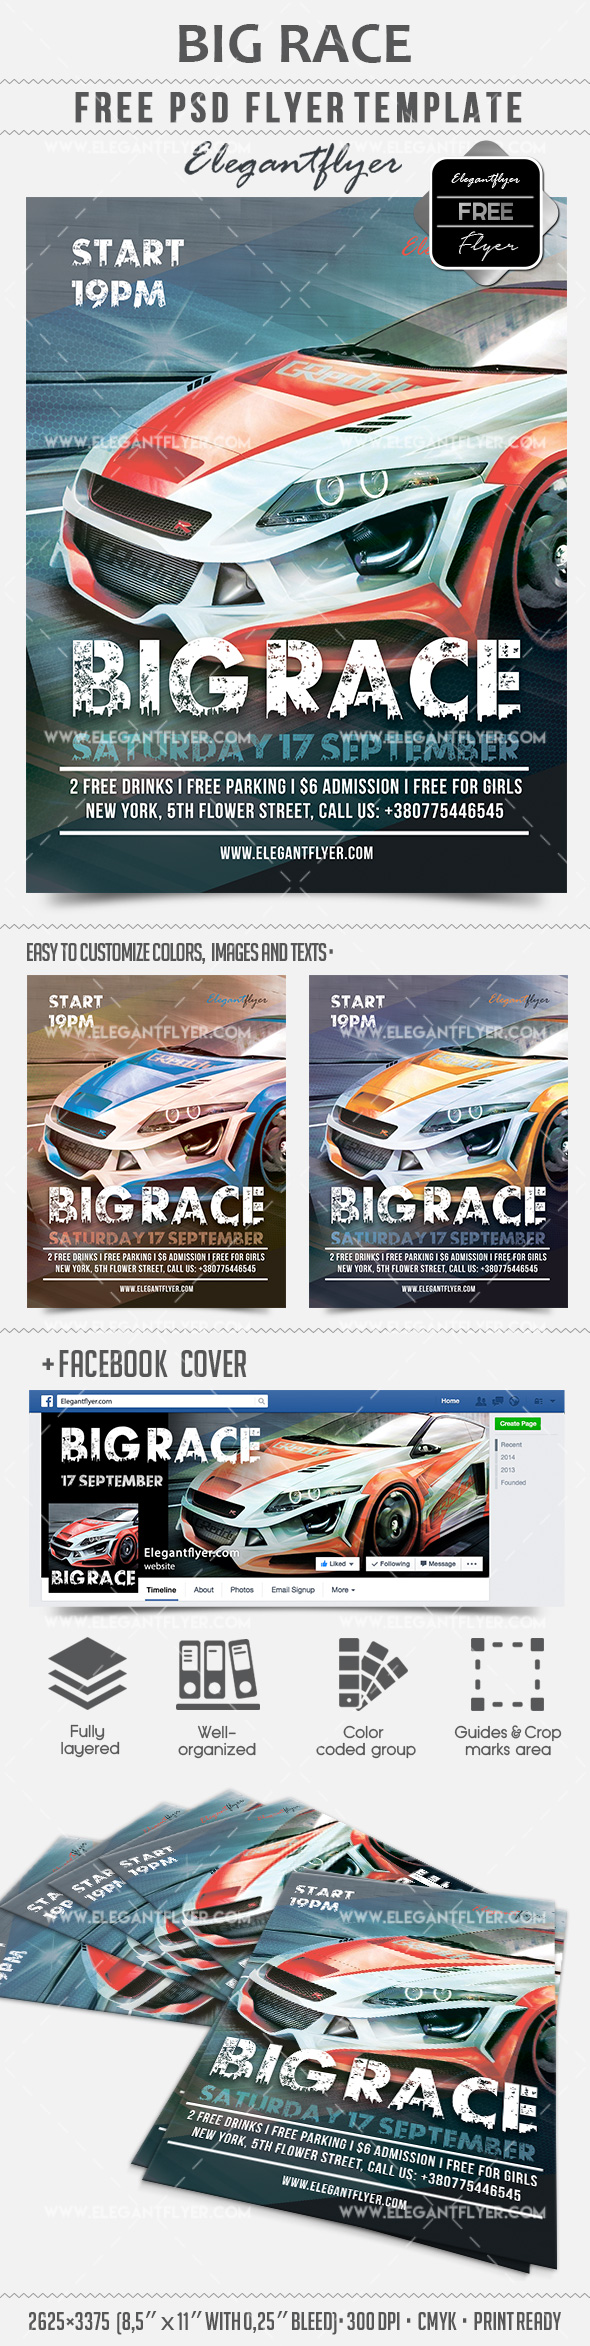 Big Race – Free Flyer PSD Template